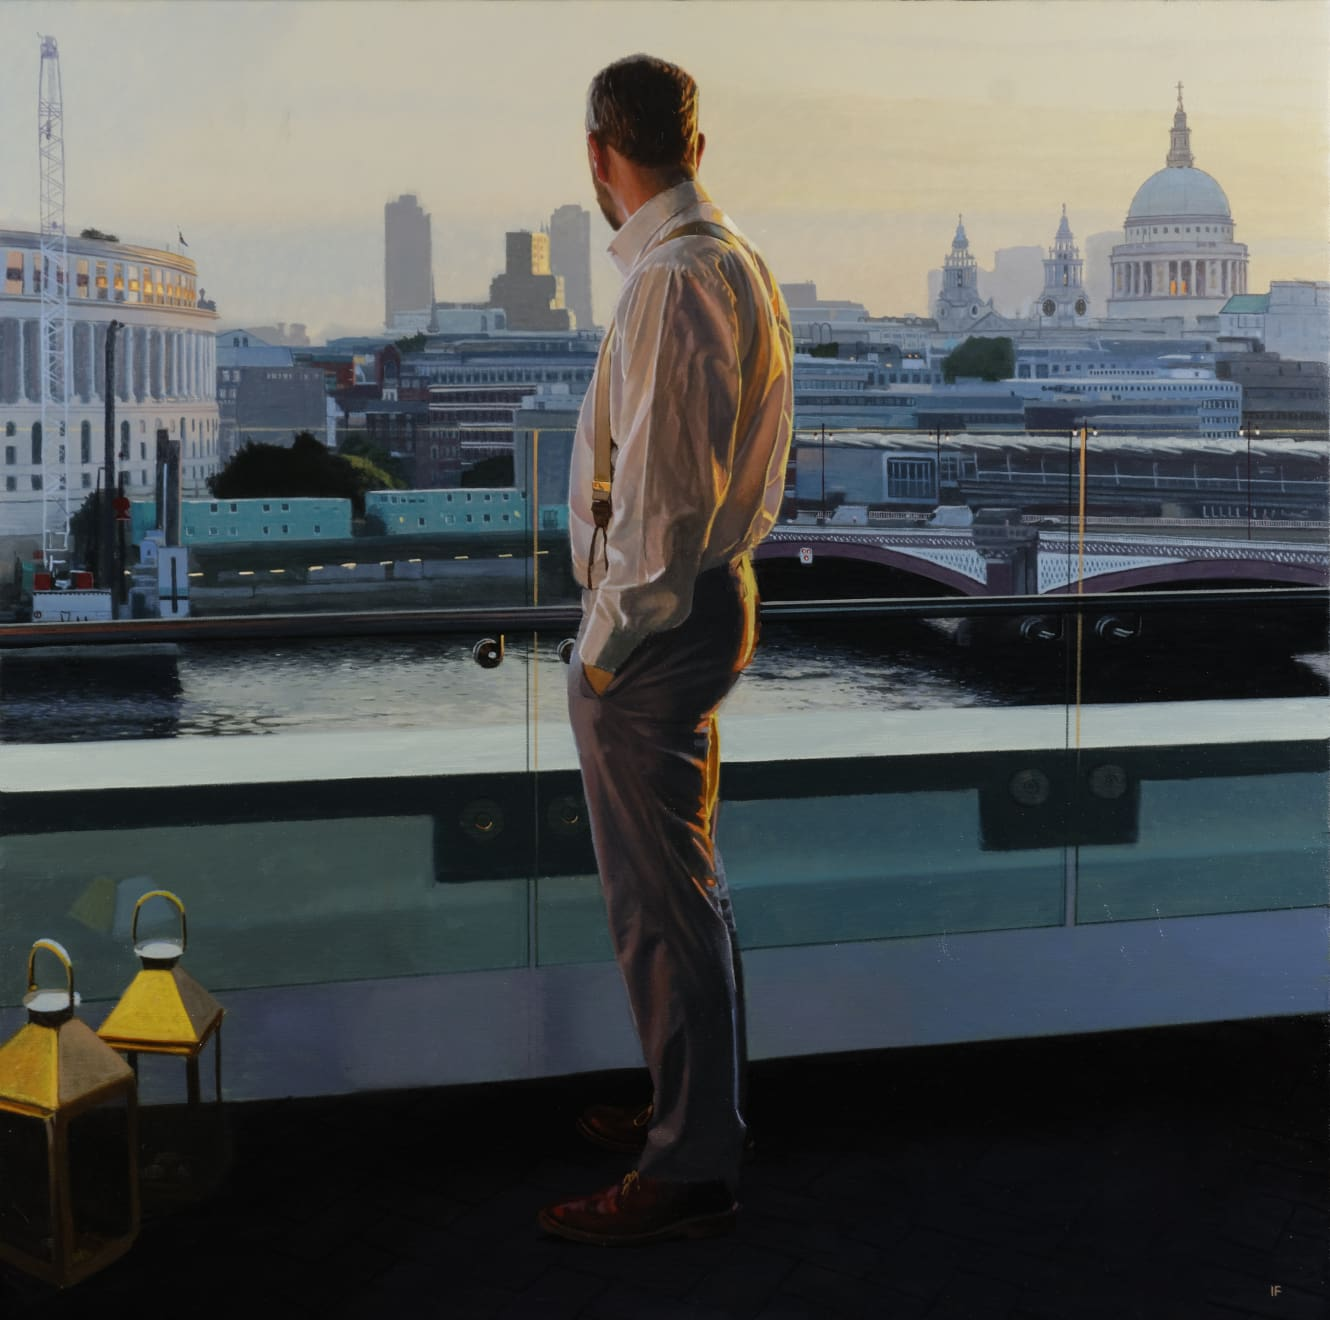 Iain Faulkner, First Light, Blackfriars Bridge, 2018